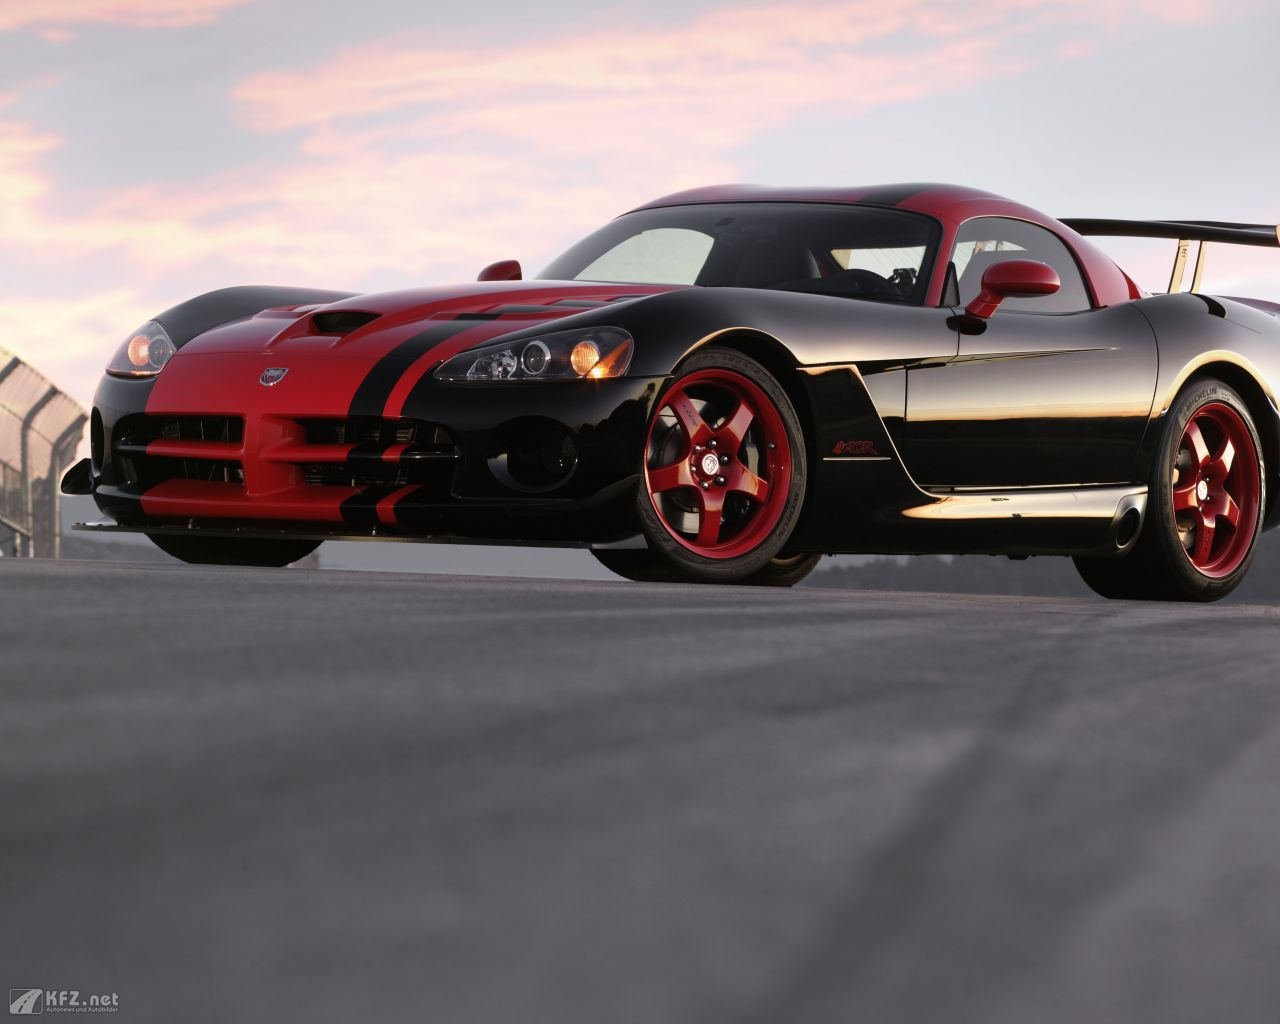 chrysler-dodge-viper-1280x1024-20